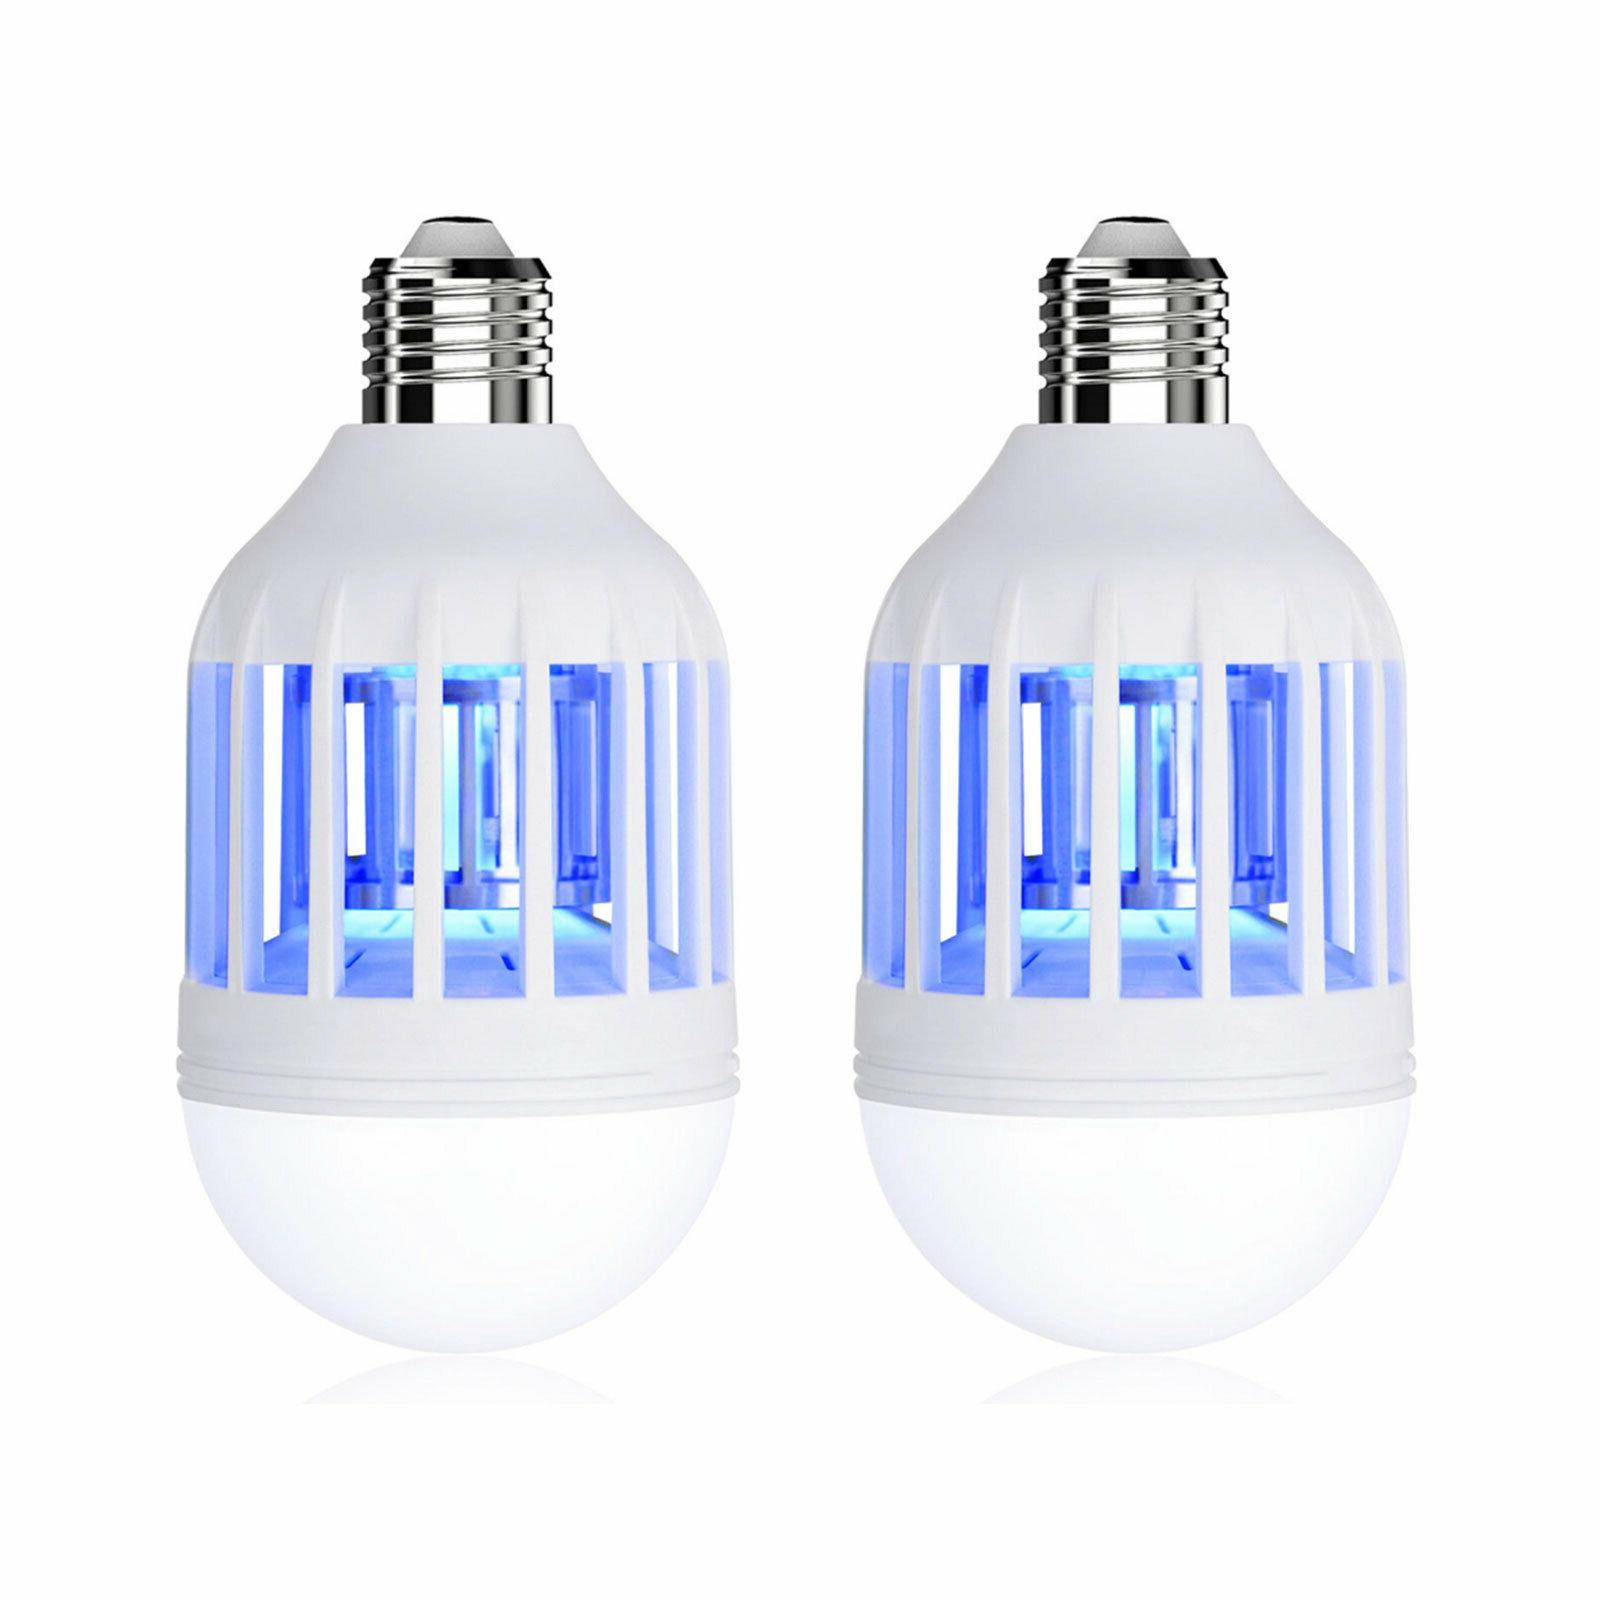 2PCS 2 in Light LED Bulb Mosquito Fly Insect Killer Bulb